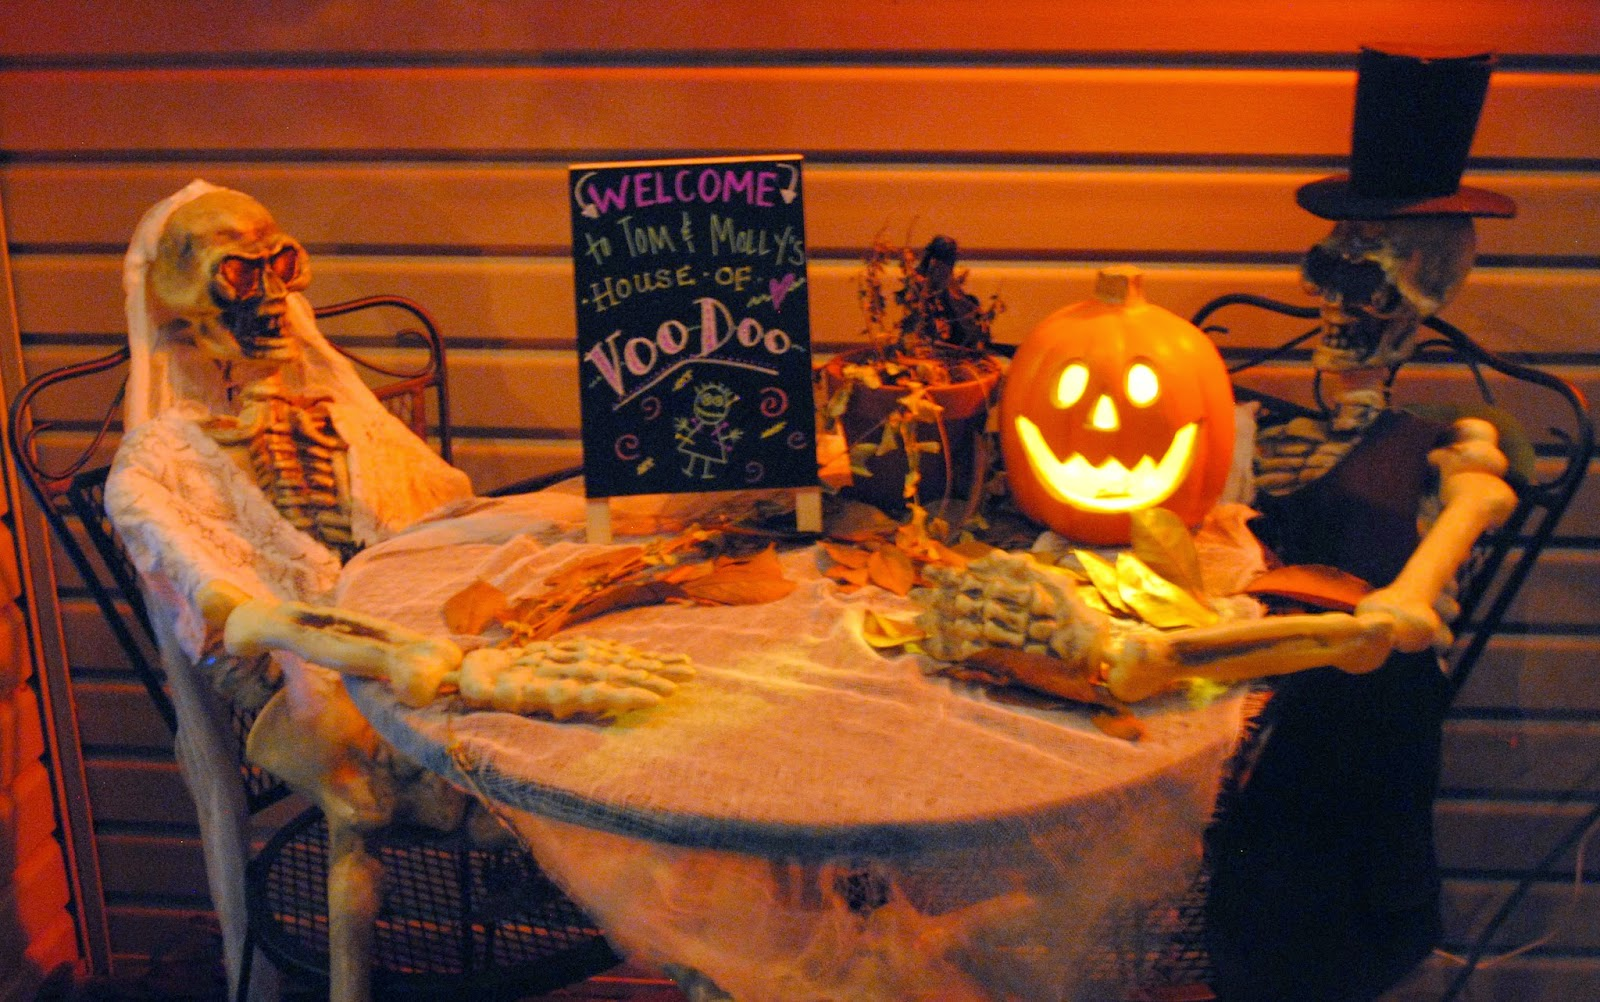 Good Golly, Ms. Molly!: Halloween Decorations and Felt